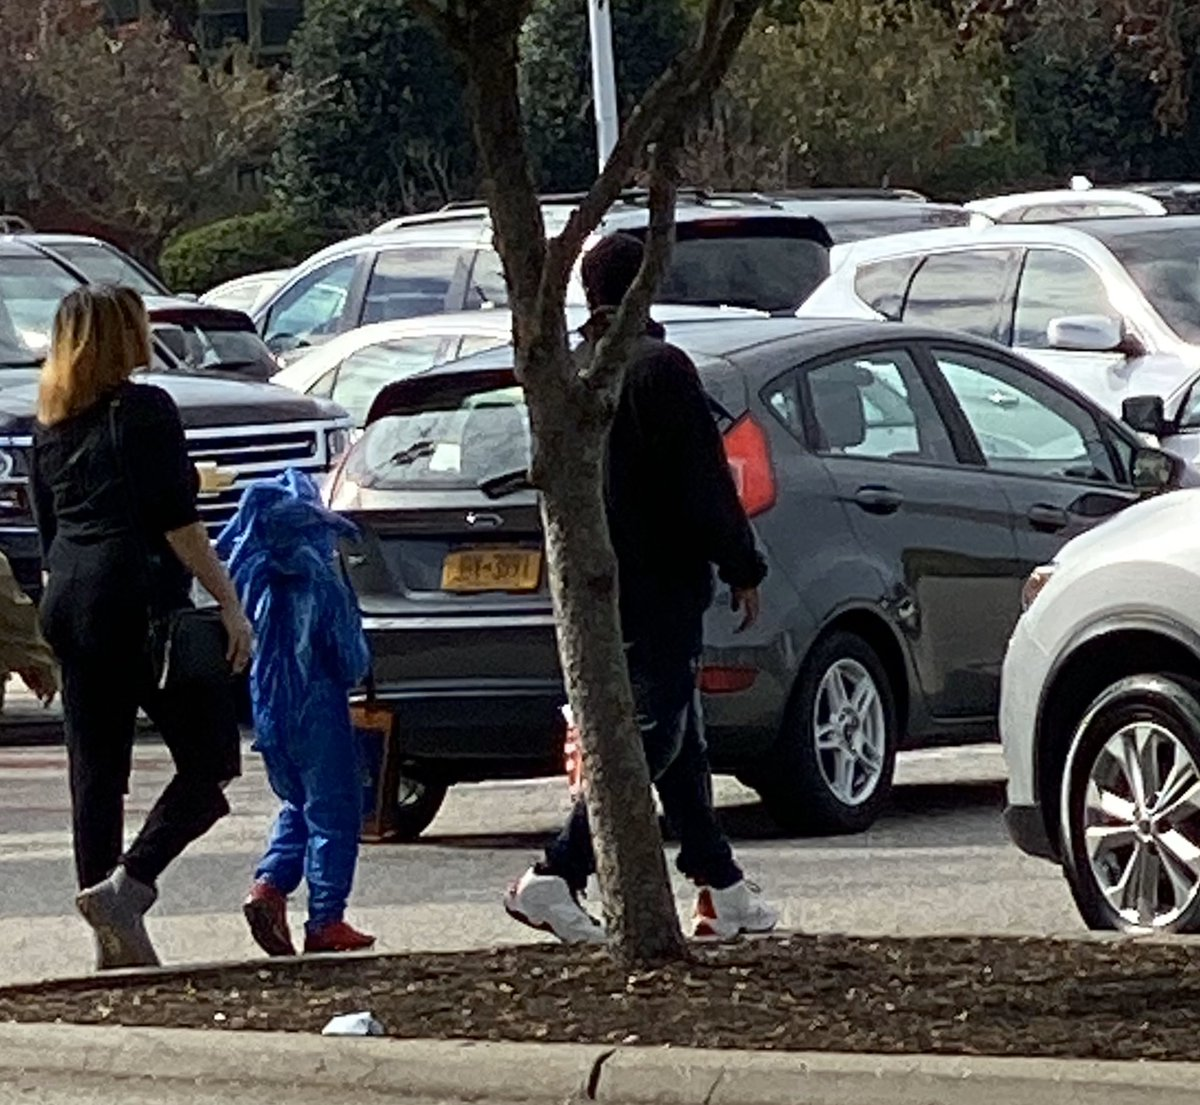 Speedsupersonic On Twitter This Kid At Target Was Wearing The Sonic The Hedgehog Movie Costume So Proud Of Today S Youth